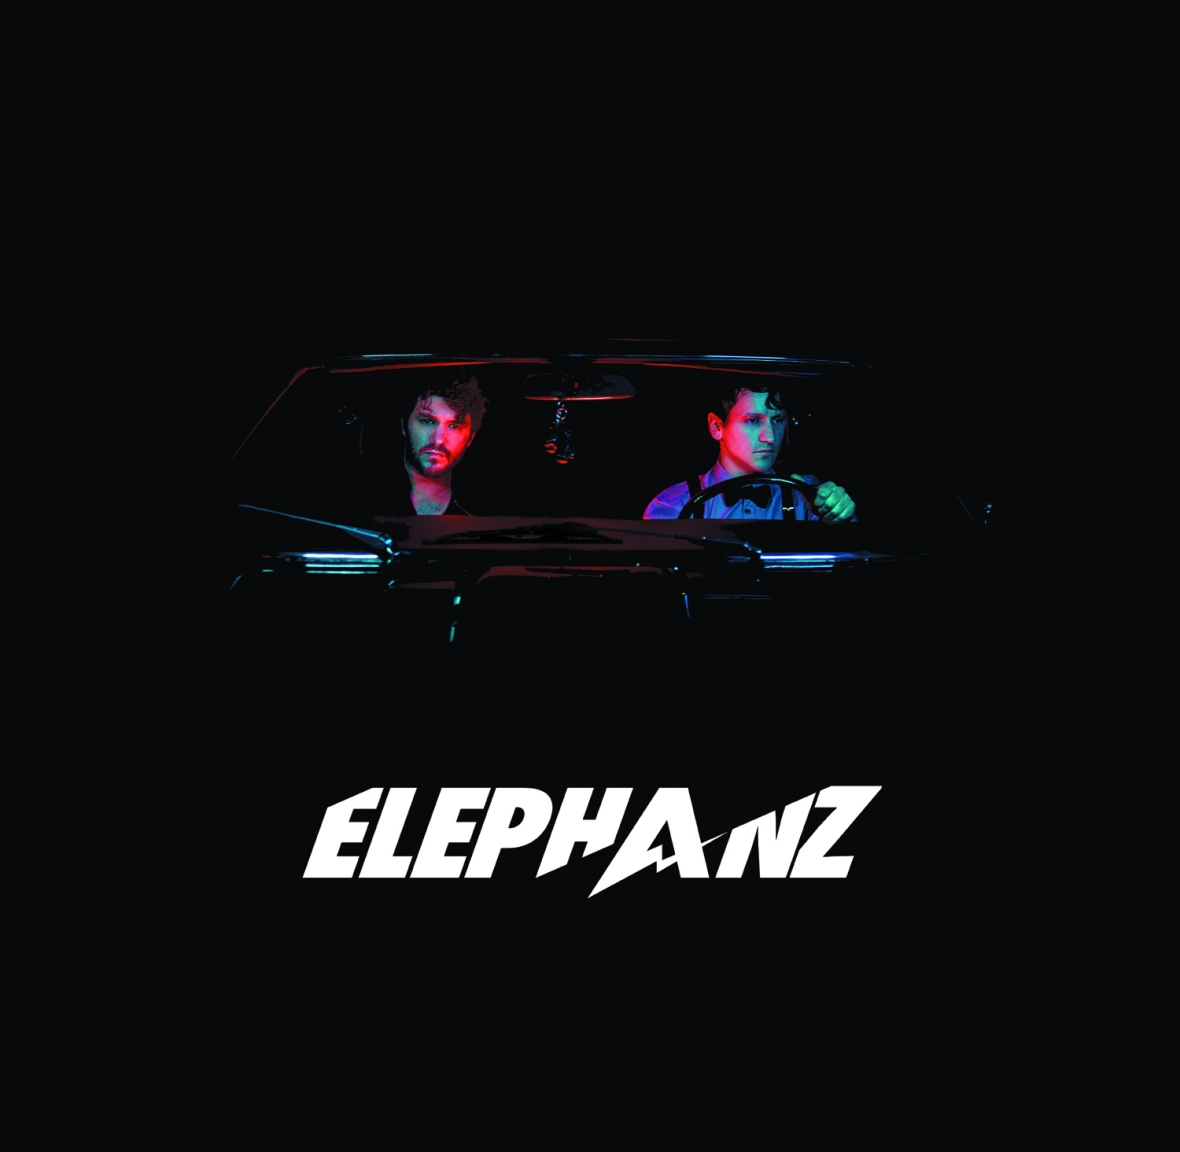 ELEPHANZ Ft. Eugénie - Maryland